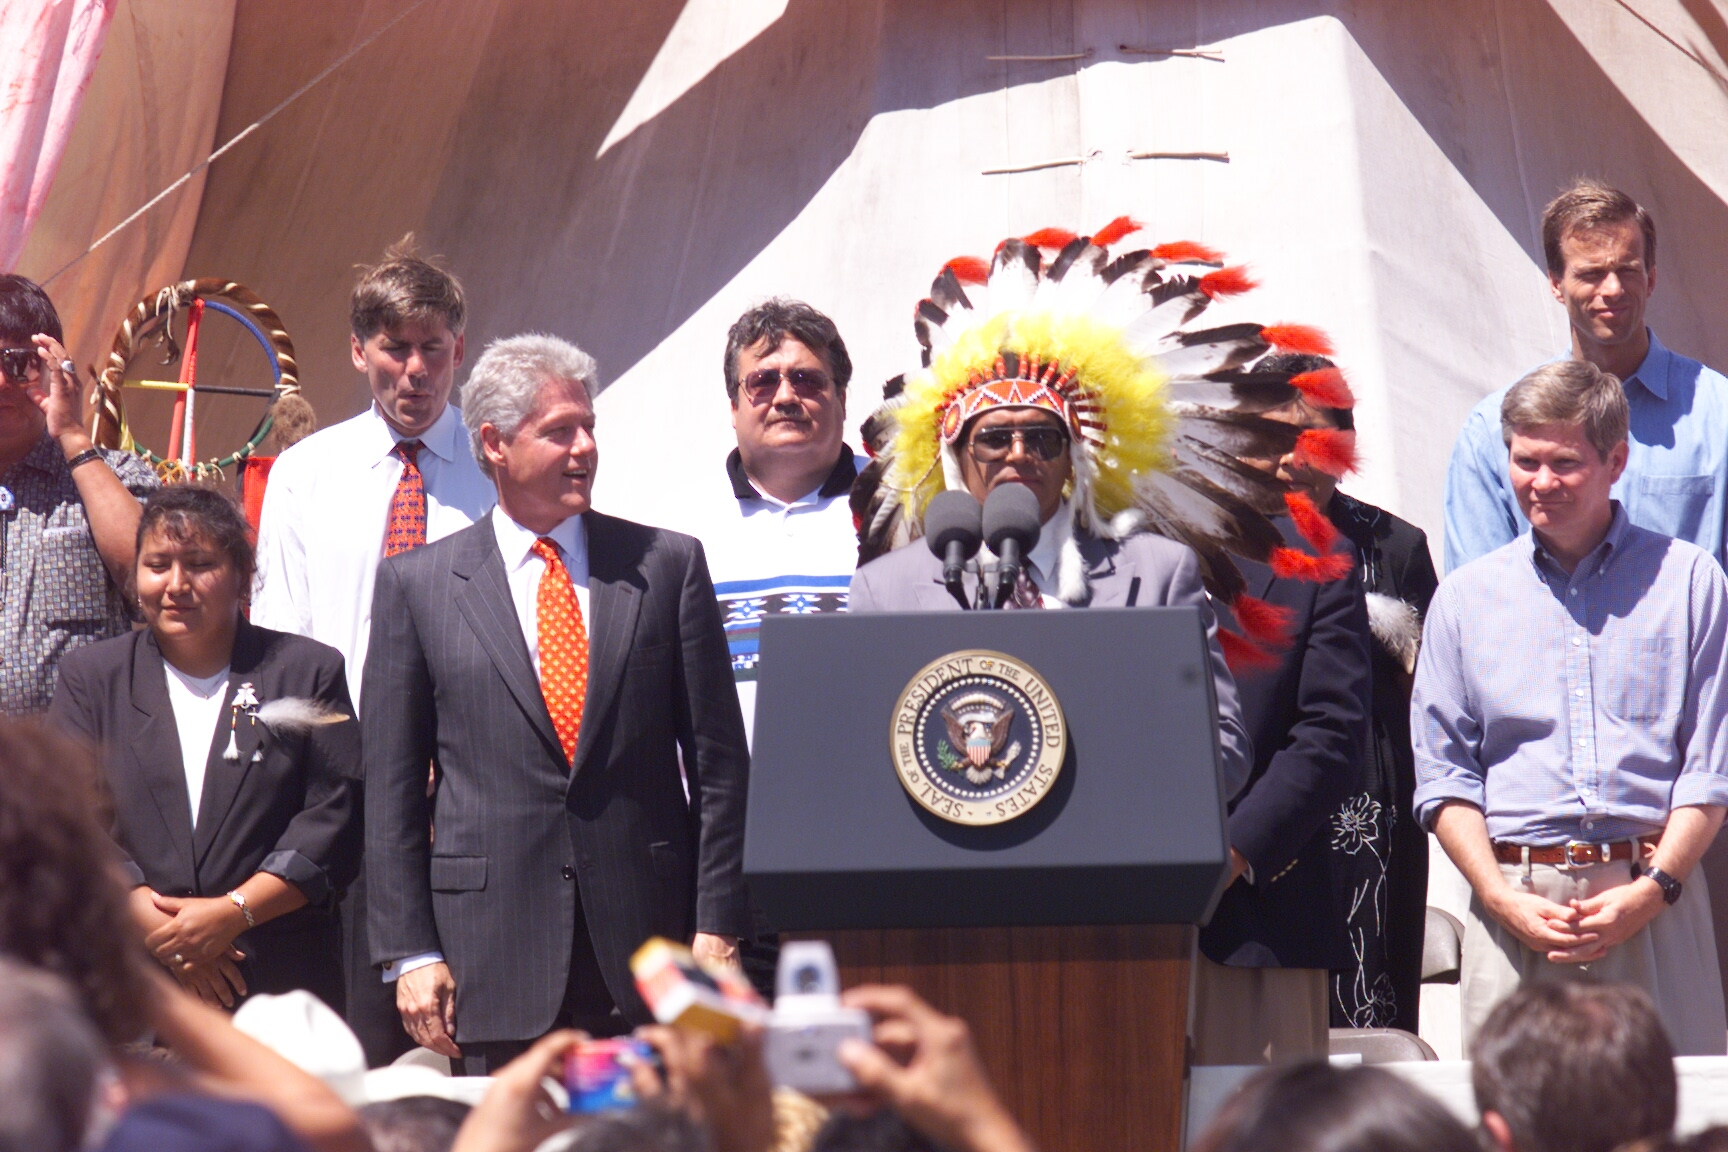 President of the Oglala Lakota Nation welcomes President Clinton, dignitaries and guests to Pine Ridge Reservation in South Dakota. Following remarks from tribal leaders and government officials, President Clinton delivered remarks to the Pine Ridge community as part of his New Markets tour. Platform guests included Senator Tom Daschle, Senator Tim Johnson, Representative John Thune, and Secretary of Housing and Urban Development, Andrew Cuomo.